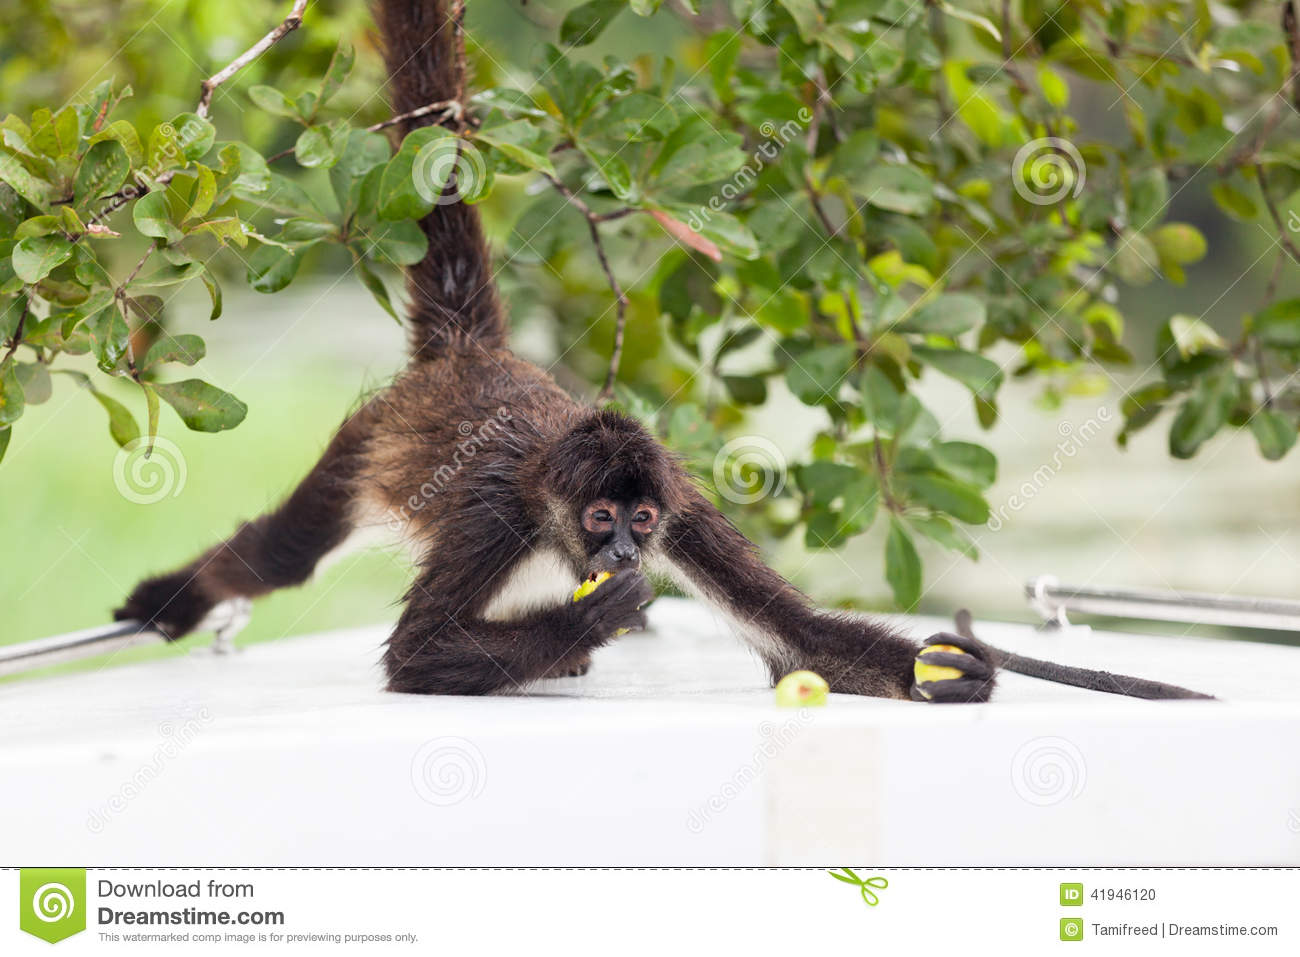 Belize Boat Brown Eating Fruit Guava Monkey Spider Tree Small